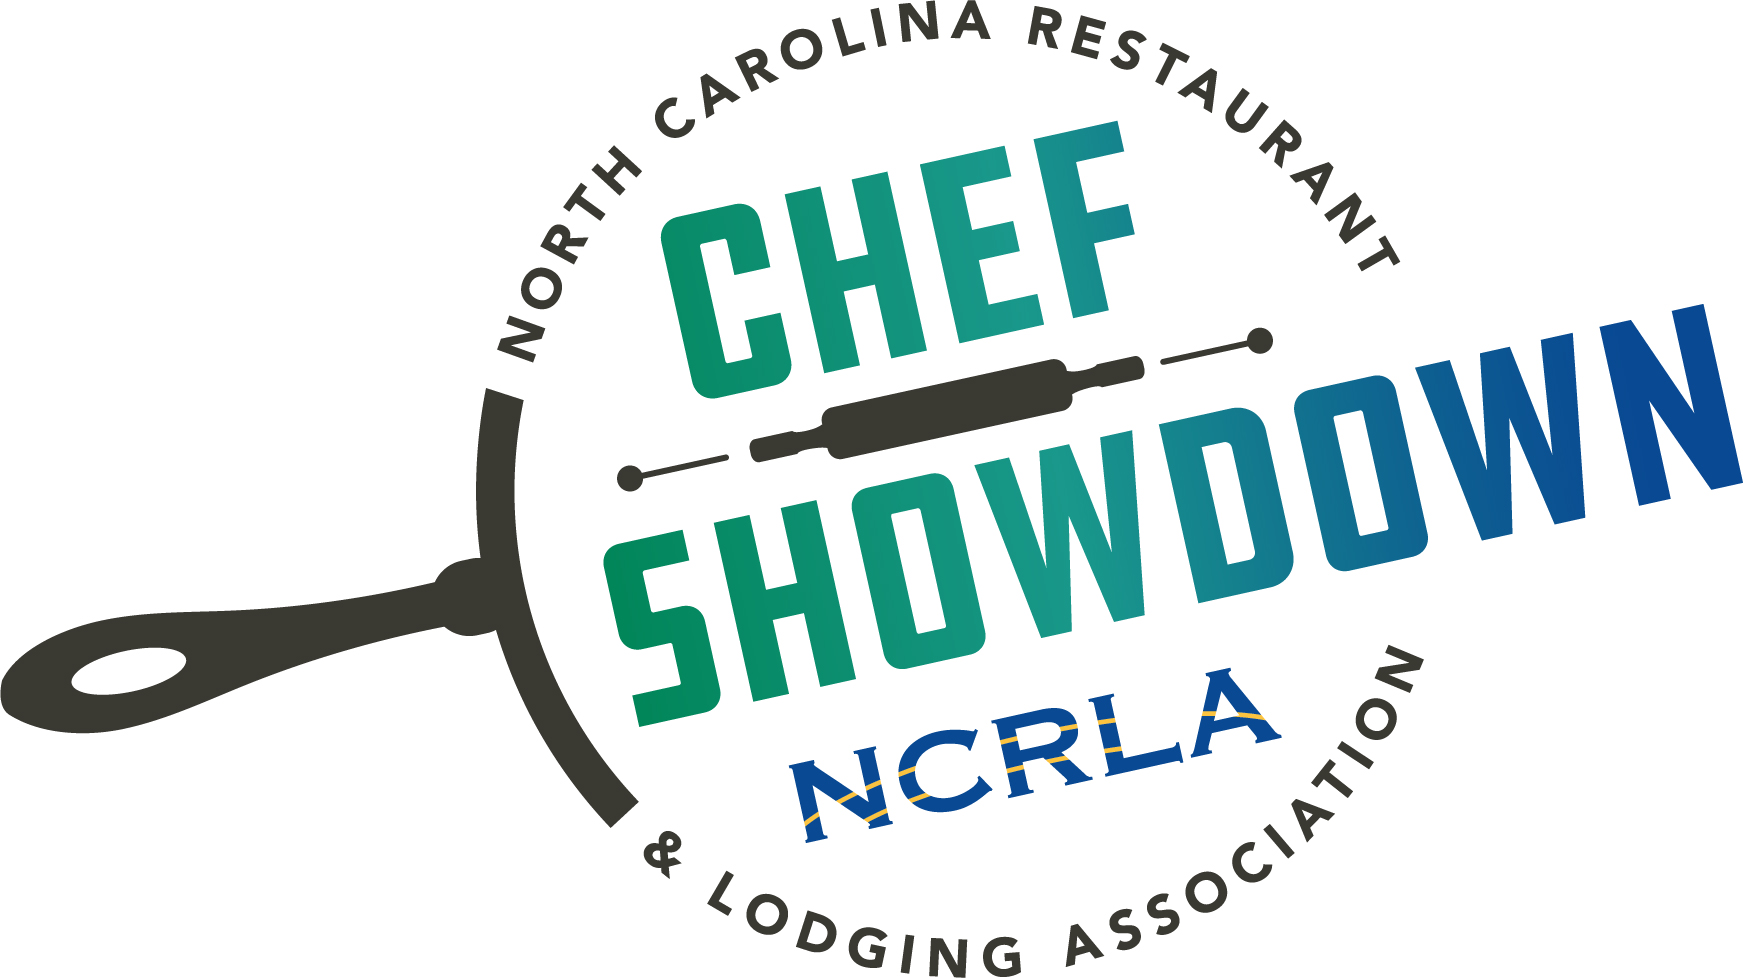 2018 NCRLA Chef Showdown in the Queen City